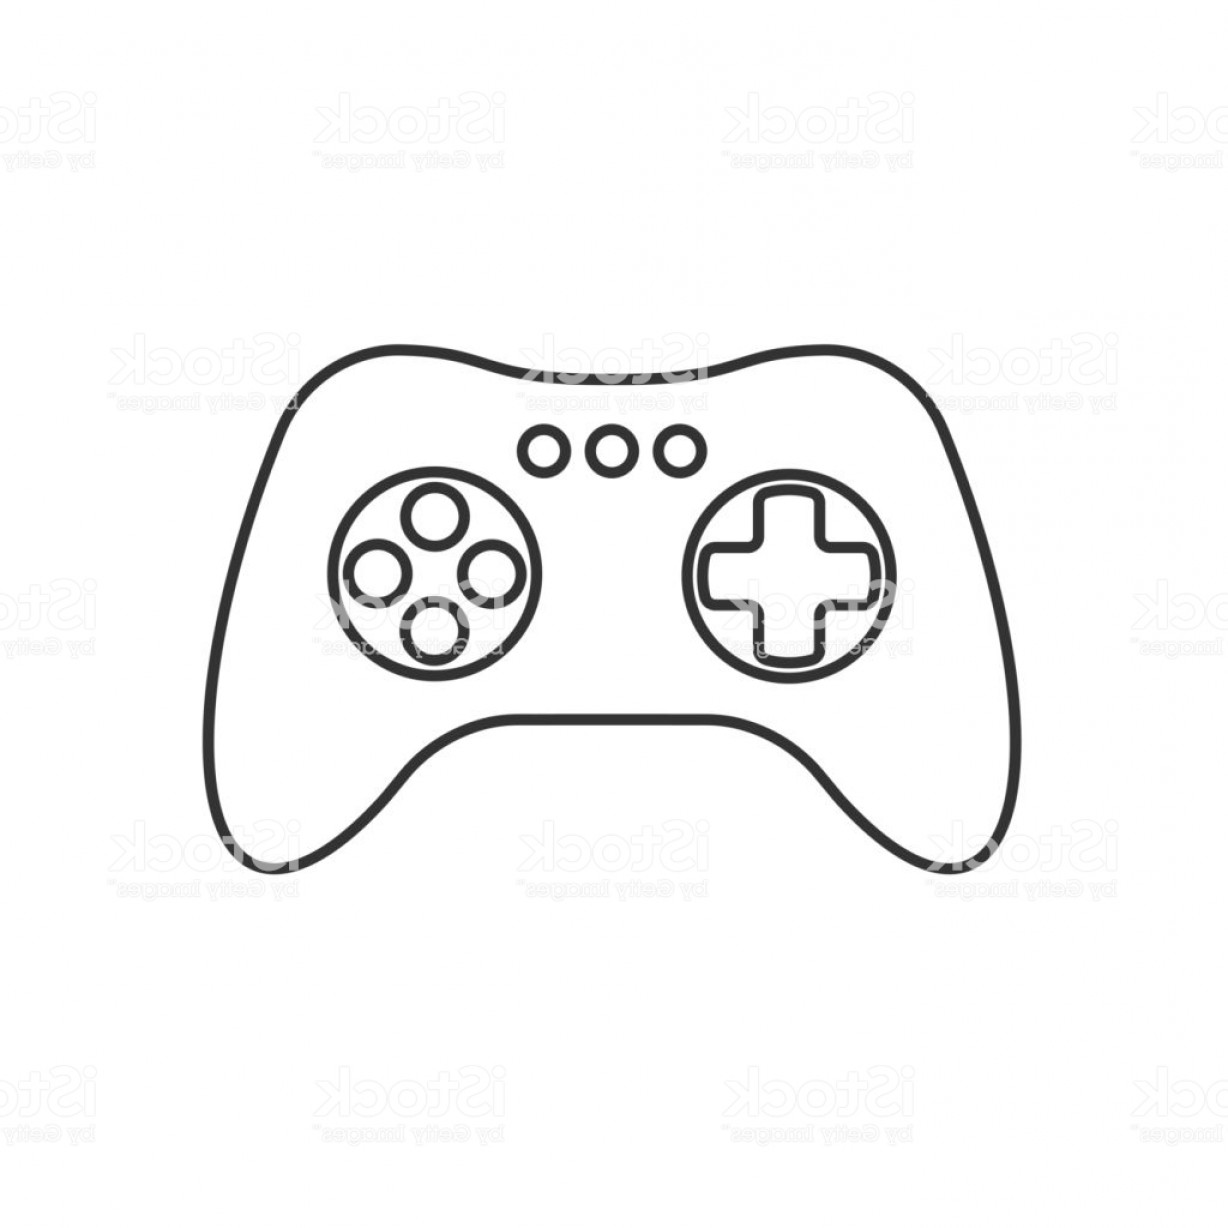 Xbox Game Controller Vector: Isolated Black Outline Gamepad Game Controller Joystick Console On White Background Gm